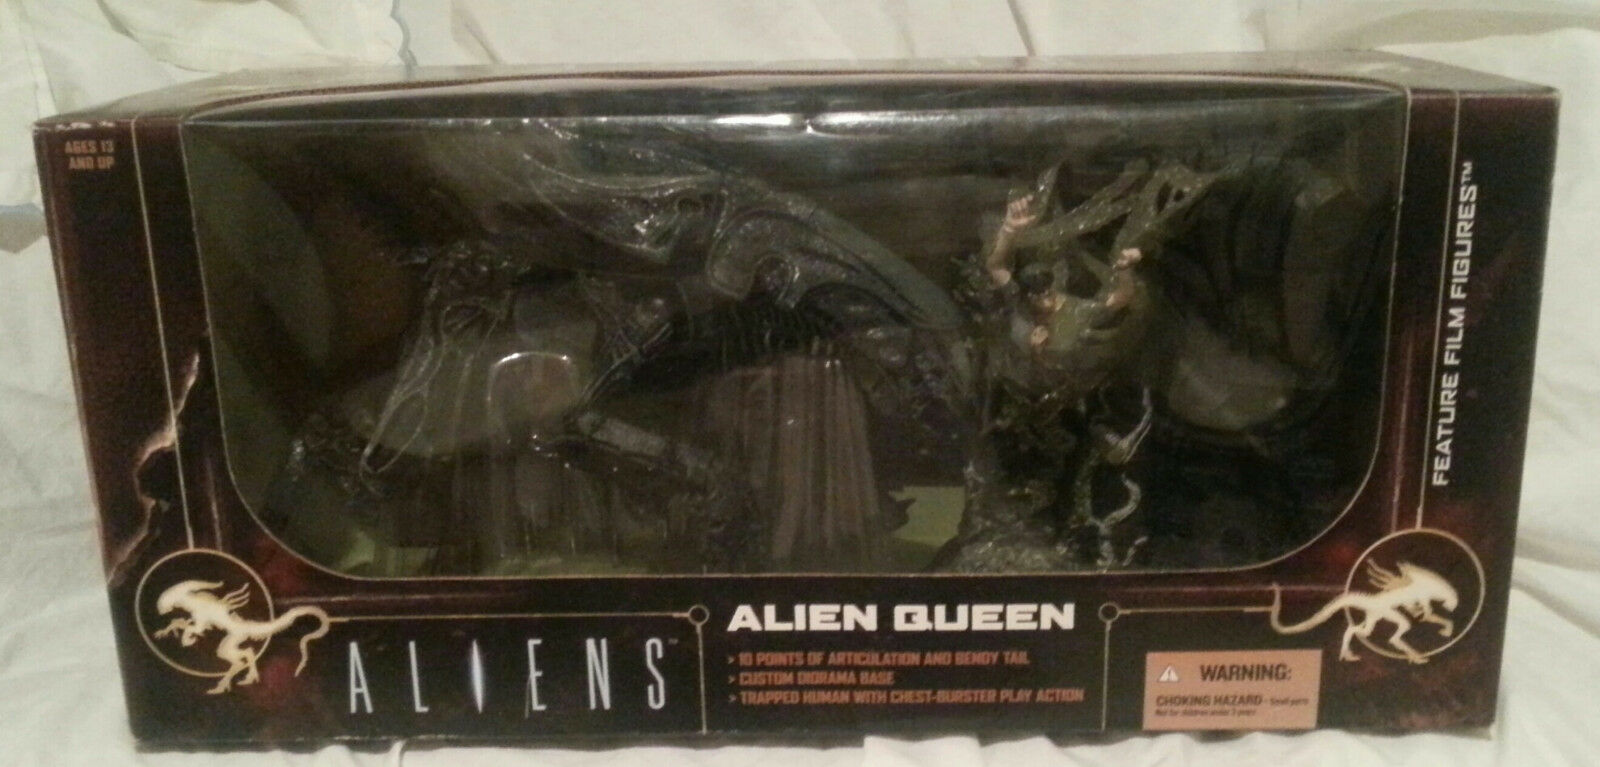 McFARLANE ALIEN QUEEN HIVE WITH CHESTBURSTER VICTIM BOX SET ALIENS...NEW IN BOX